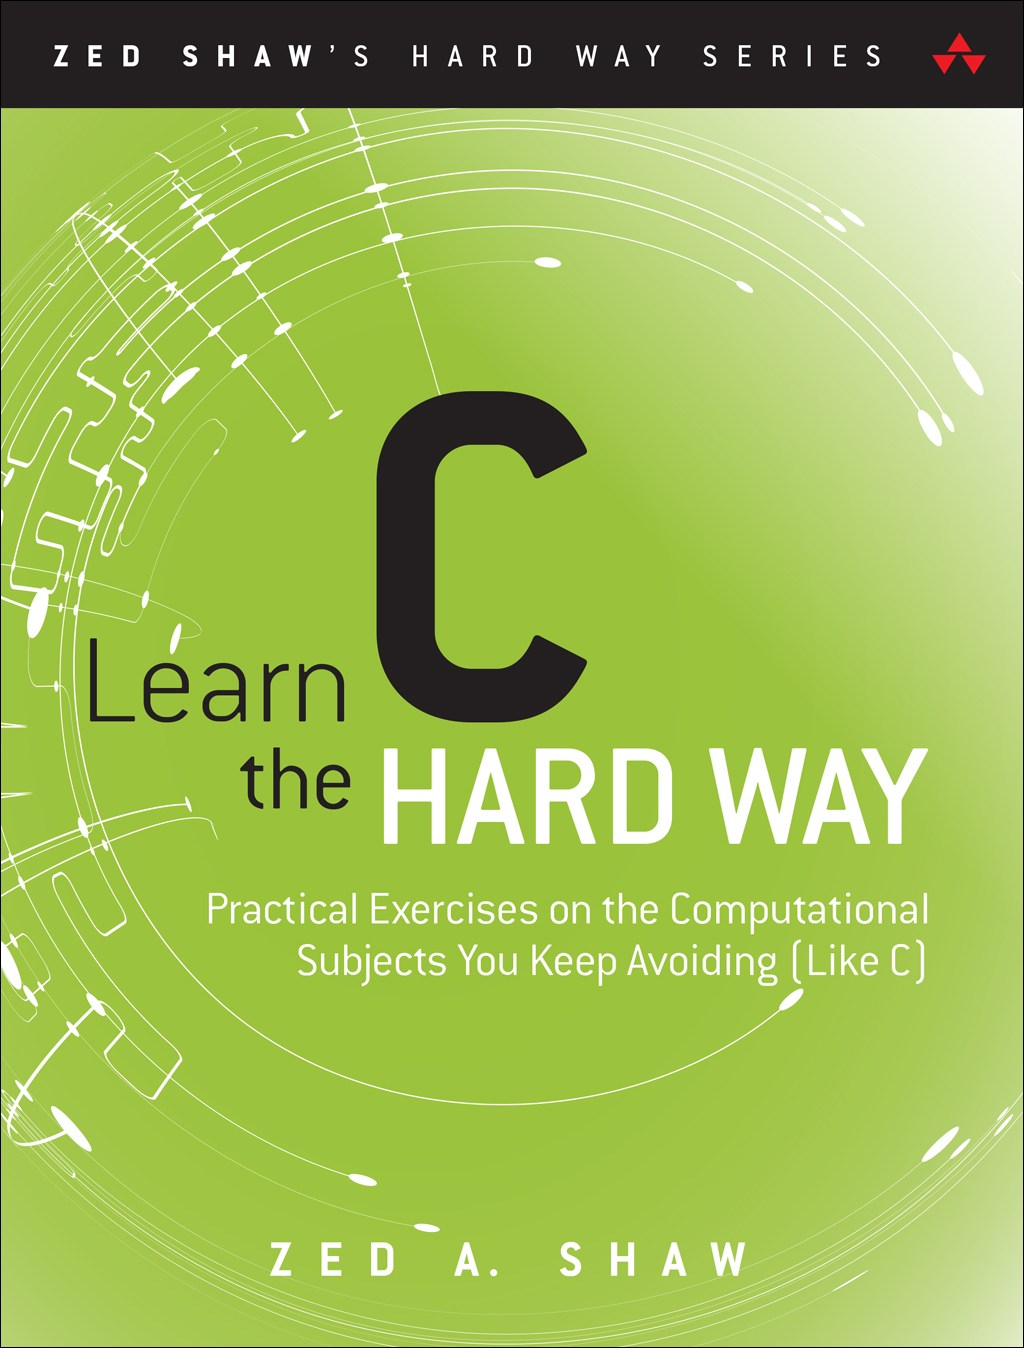 Learn C the Hard Way: Practical Exercises on the Computational Subjects You Keep Avoiding (Like C)